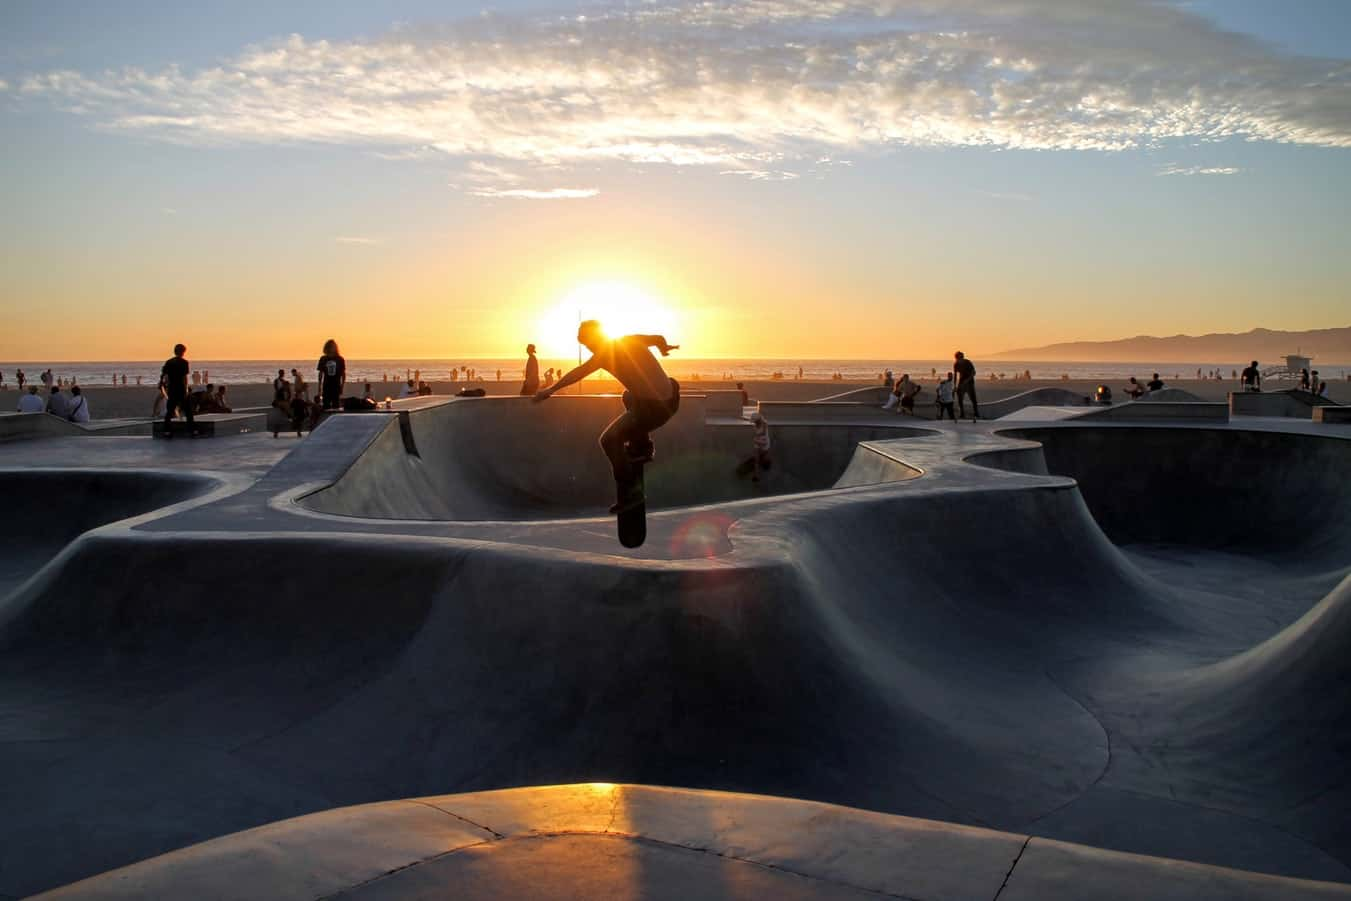 person on ramp riding skateboard with sun in the backround